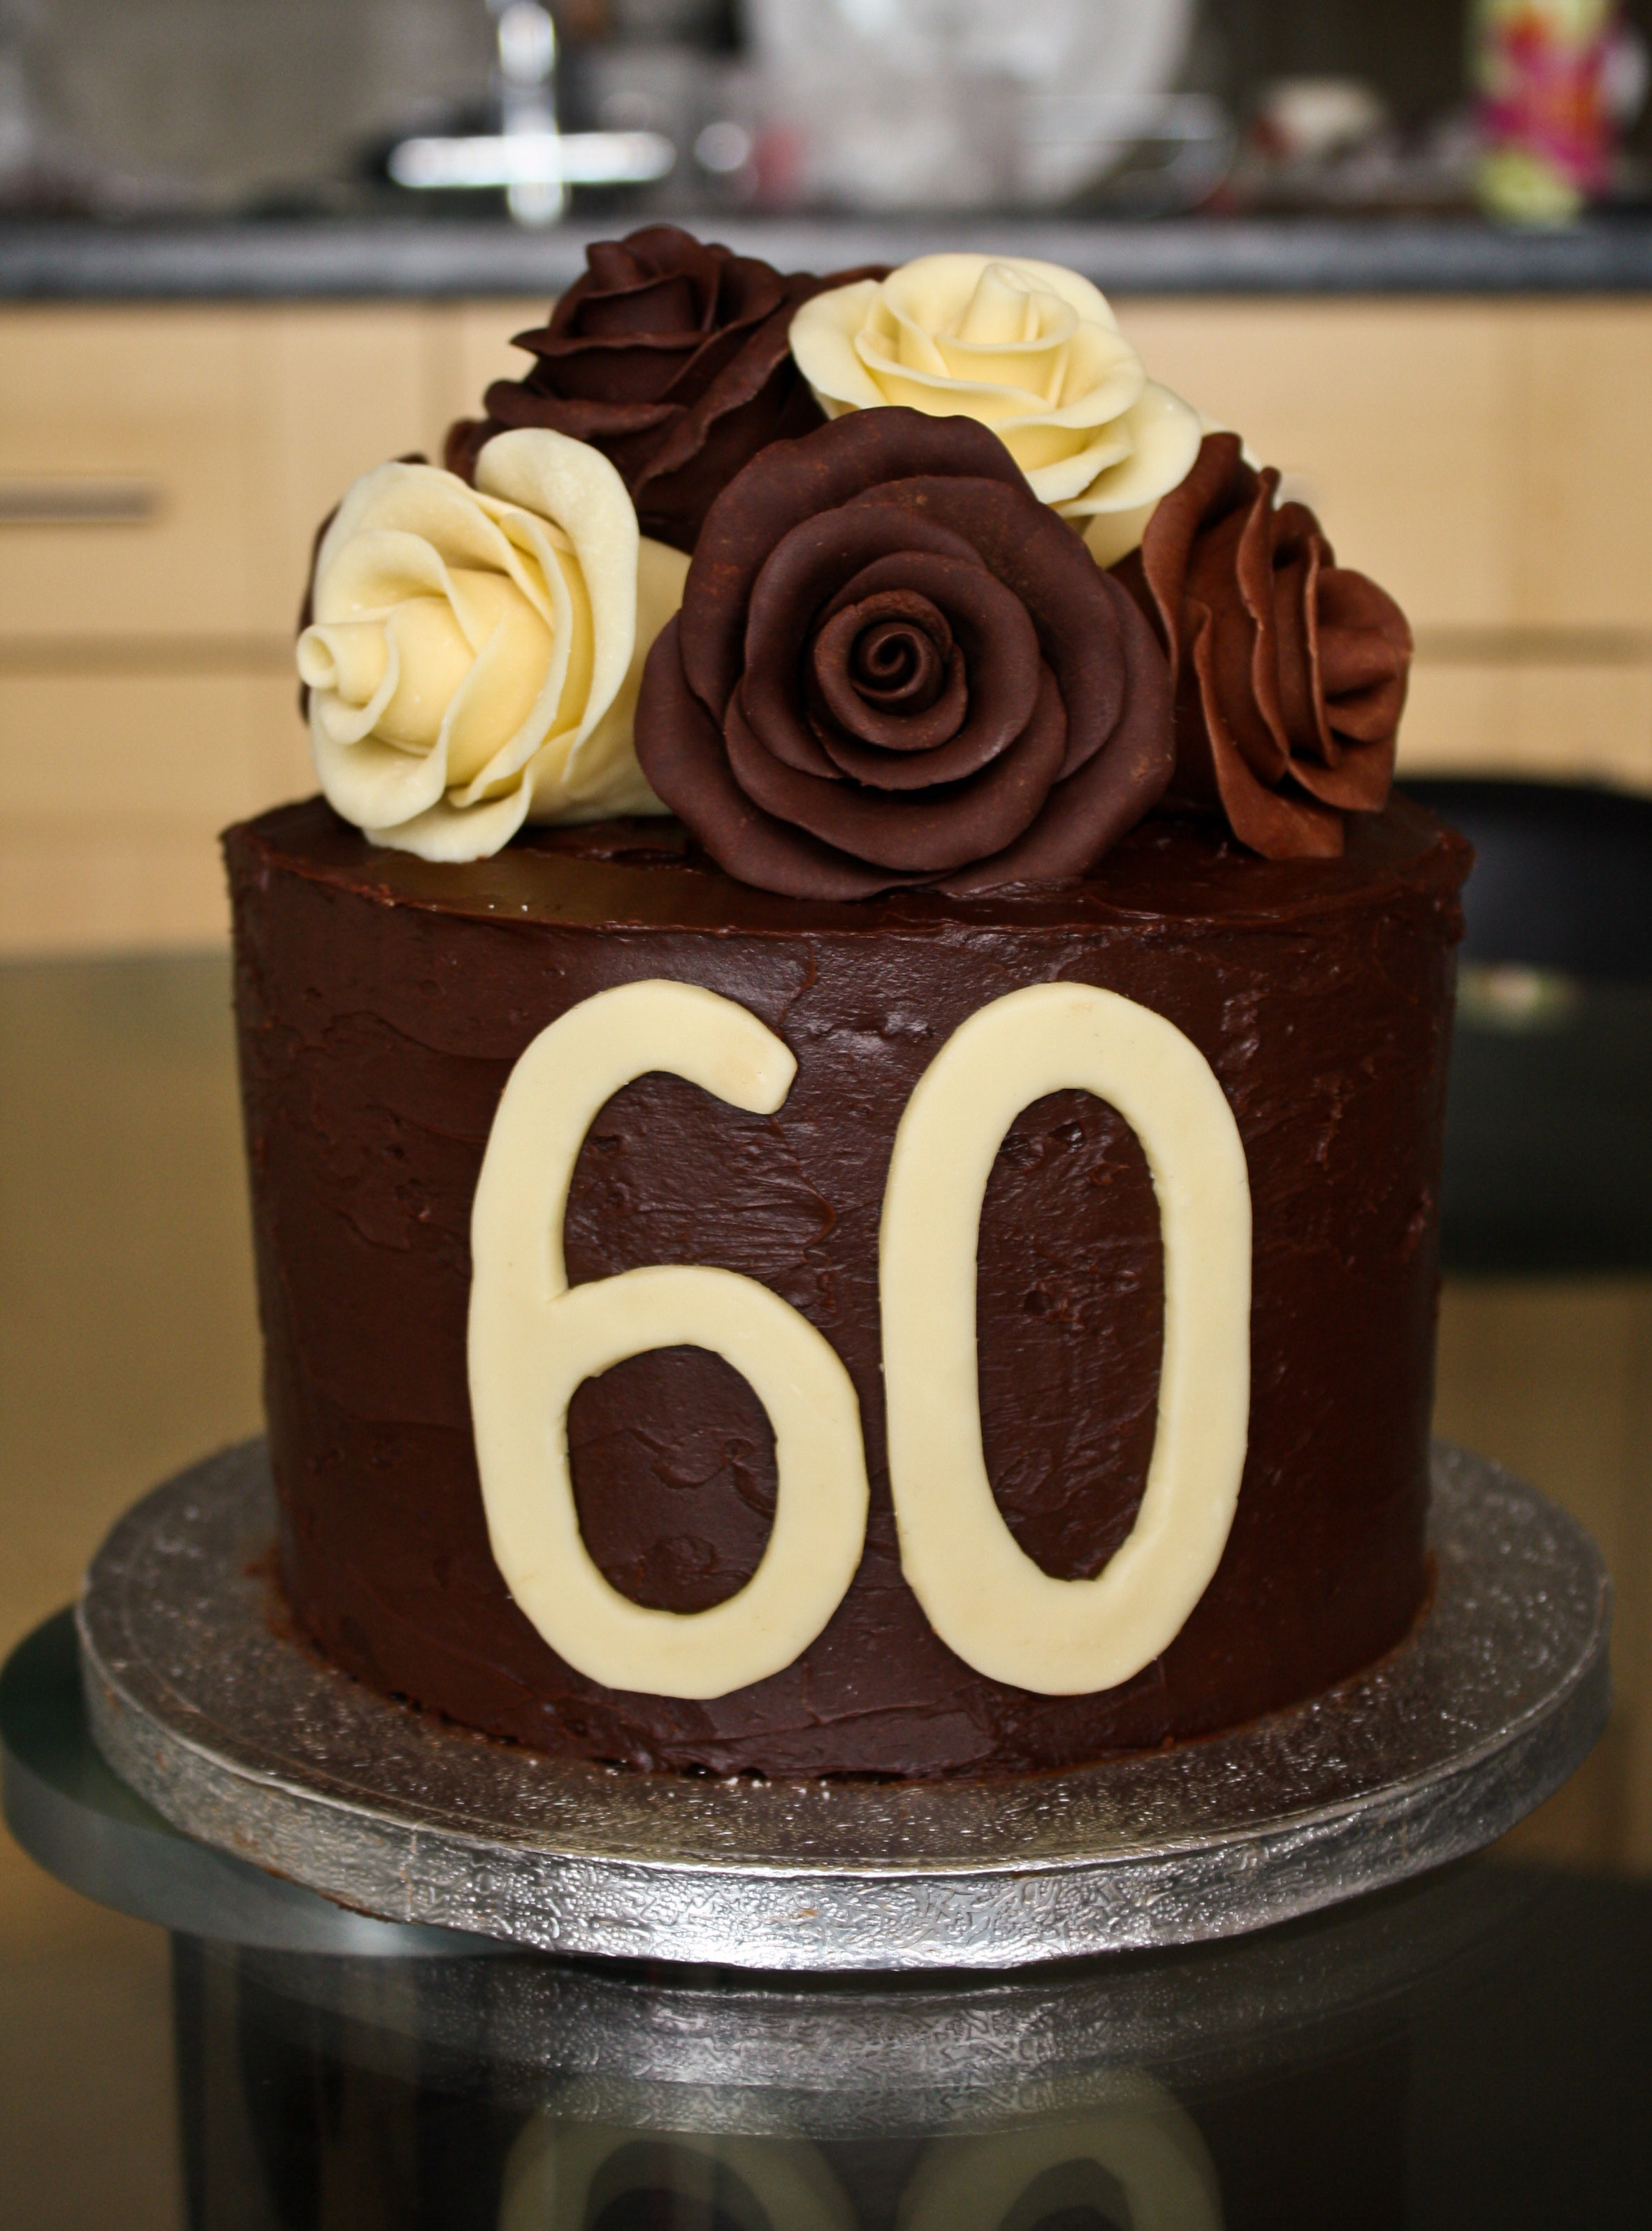 Best ideas about 60th Birthday Cake . Save or Pin Chocolate Roses Birthday Cake Now.